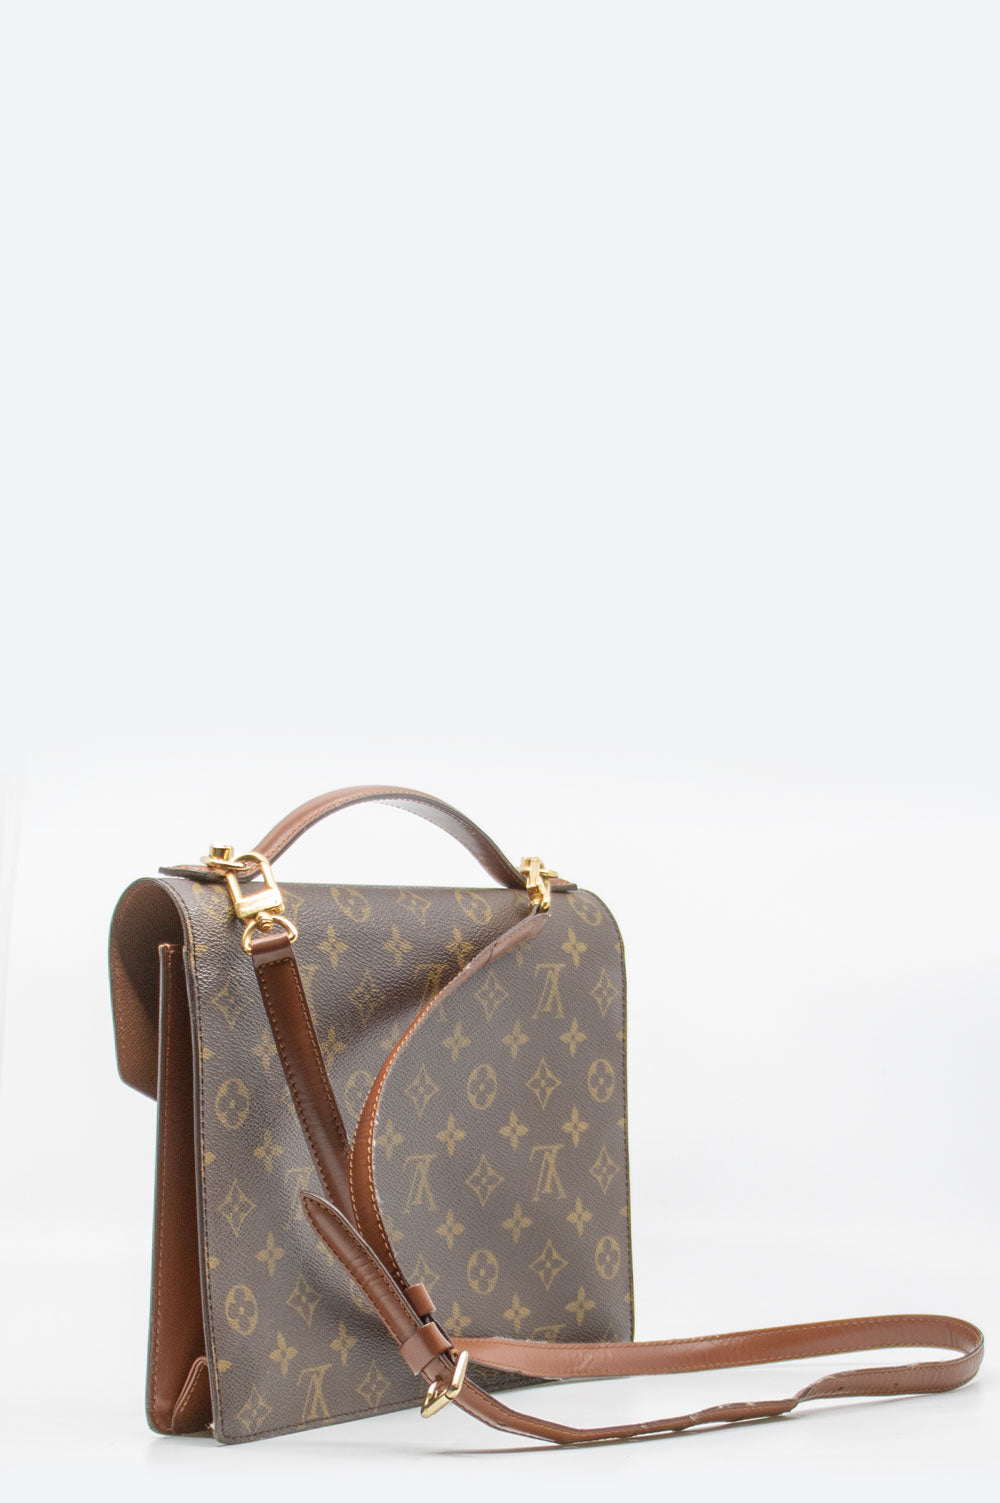 LOUIS VUITTON Vintage Monceau 28 Bag